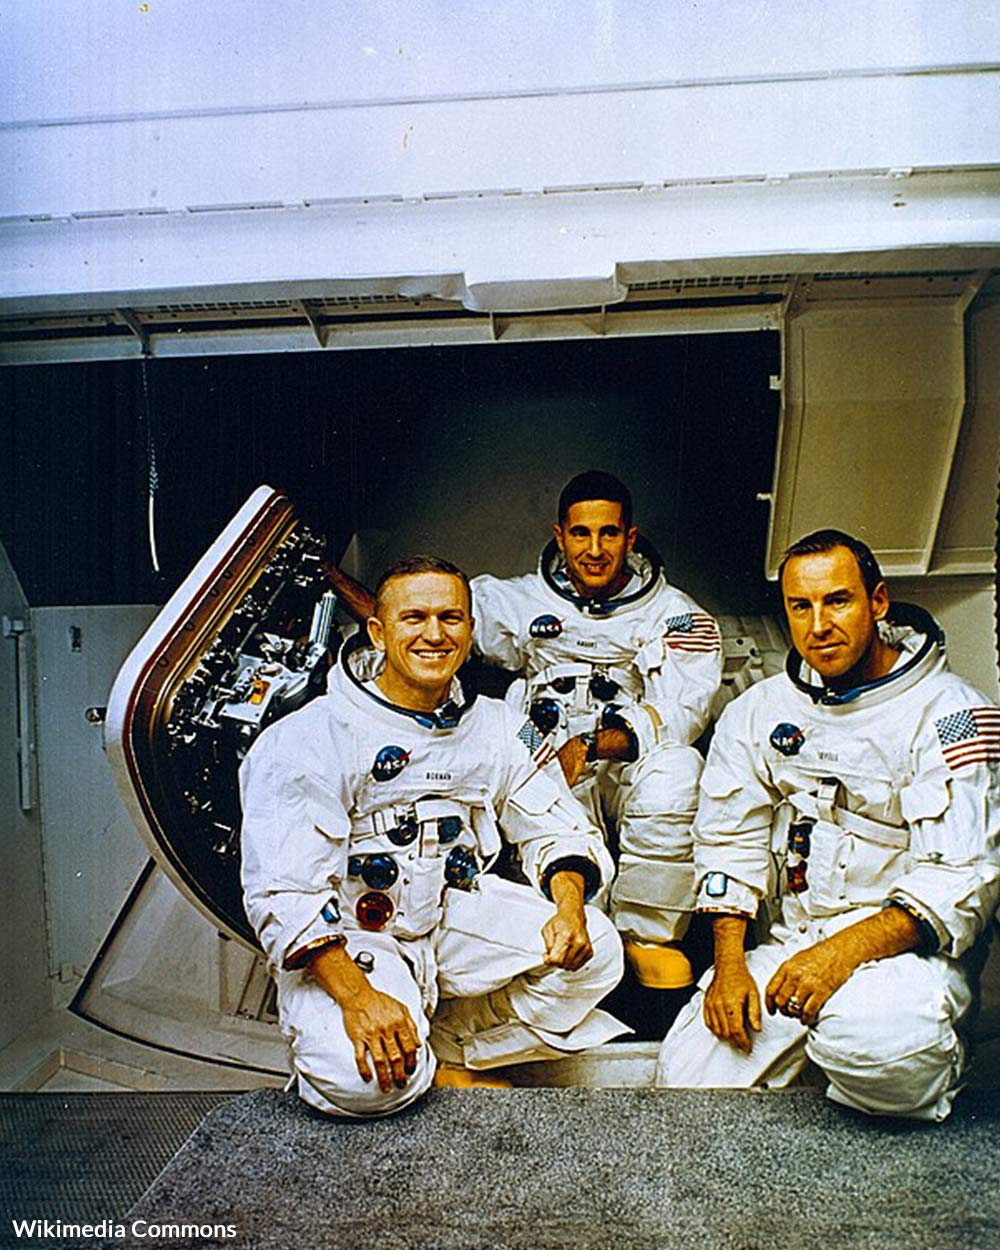 The Apollo 8 Crew (L to R) Frank Borman, commander; William Anders, Lunar Module (LM) Pilot; and James Lovell, Command Module (CM) pilot pose in front of the Apollo mission simulator during training.